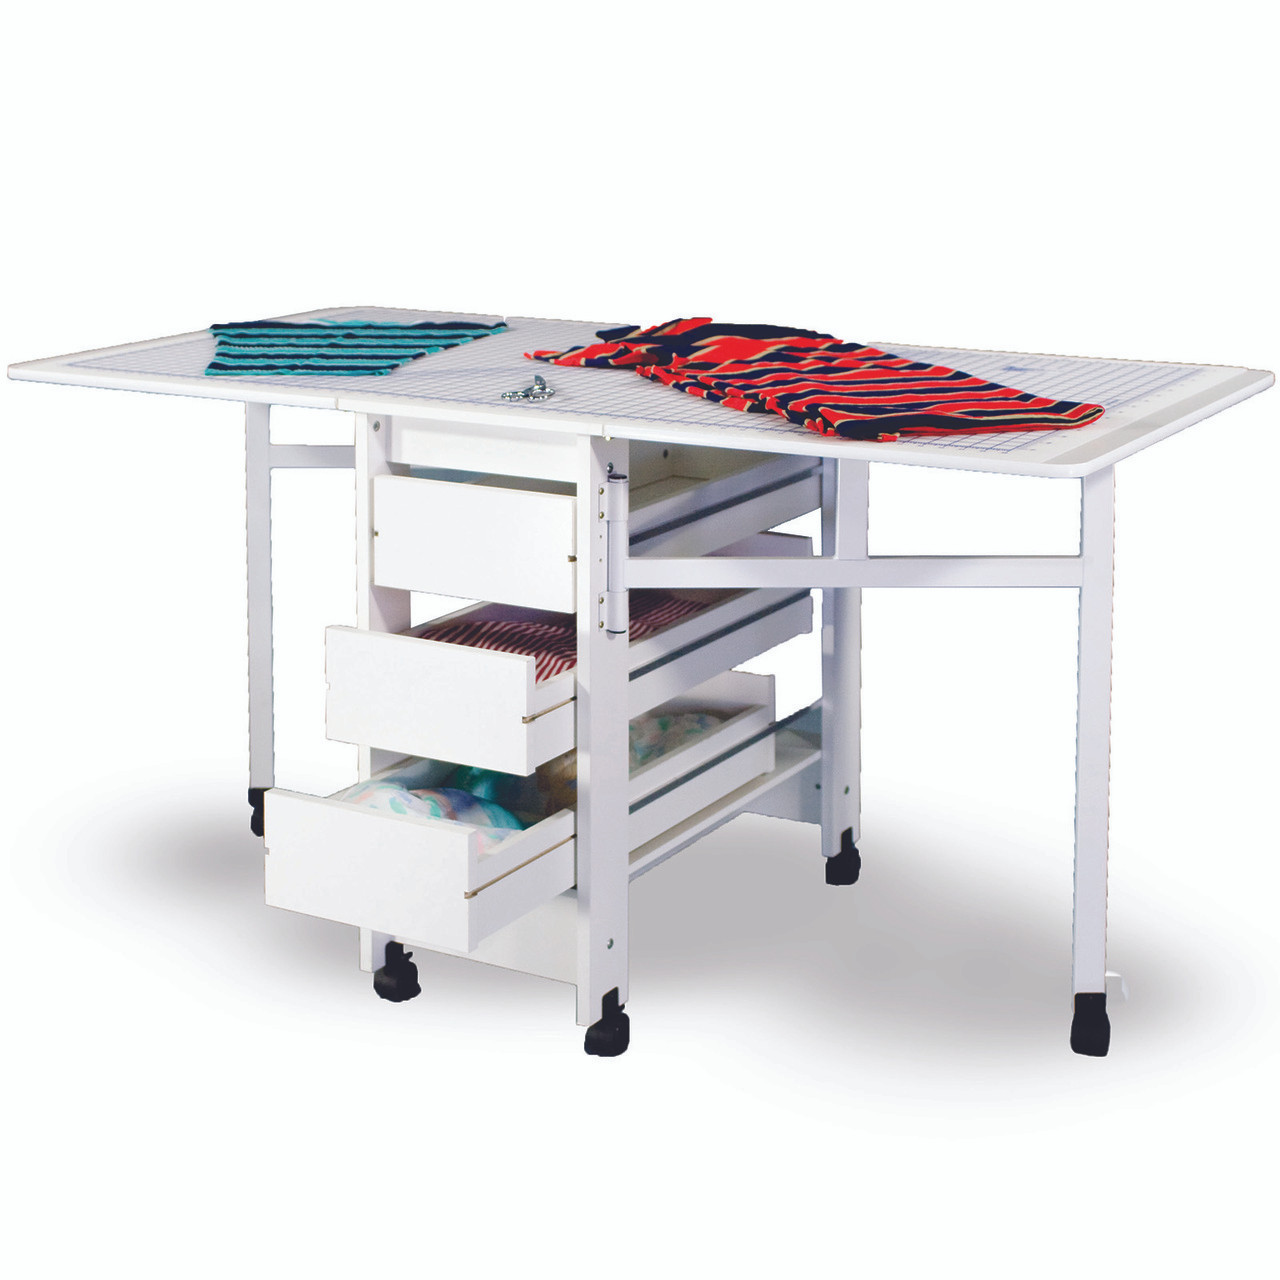 ... Fashion Sewing Cabinets #98 Large Cutting U0026 Craft Table Without Drawers